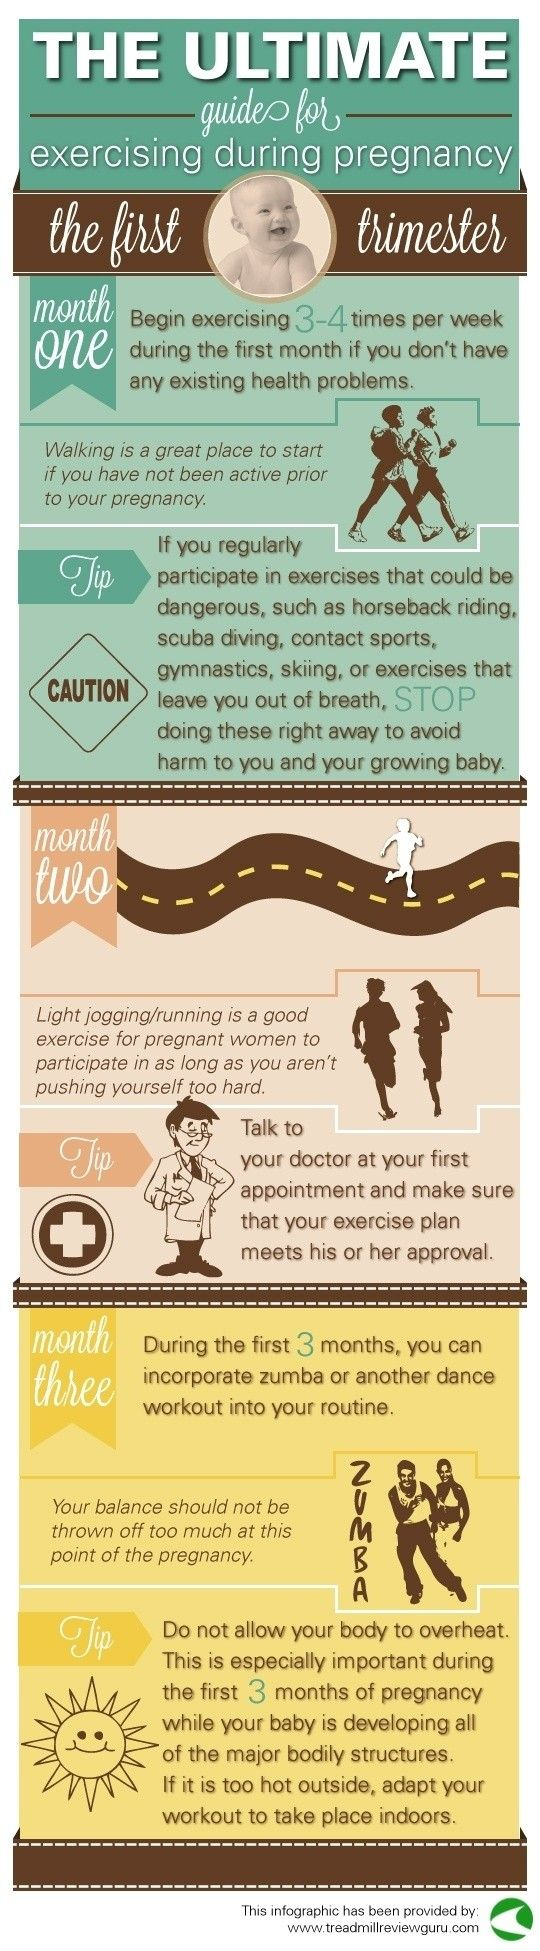 23 diagrams for moms-to-be.